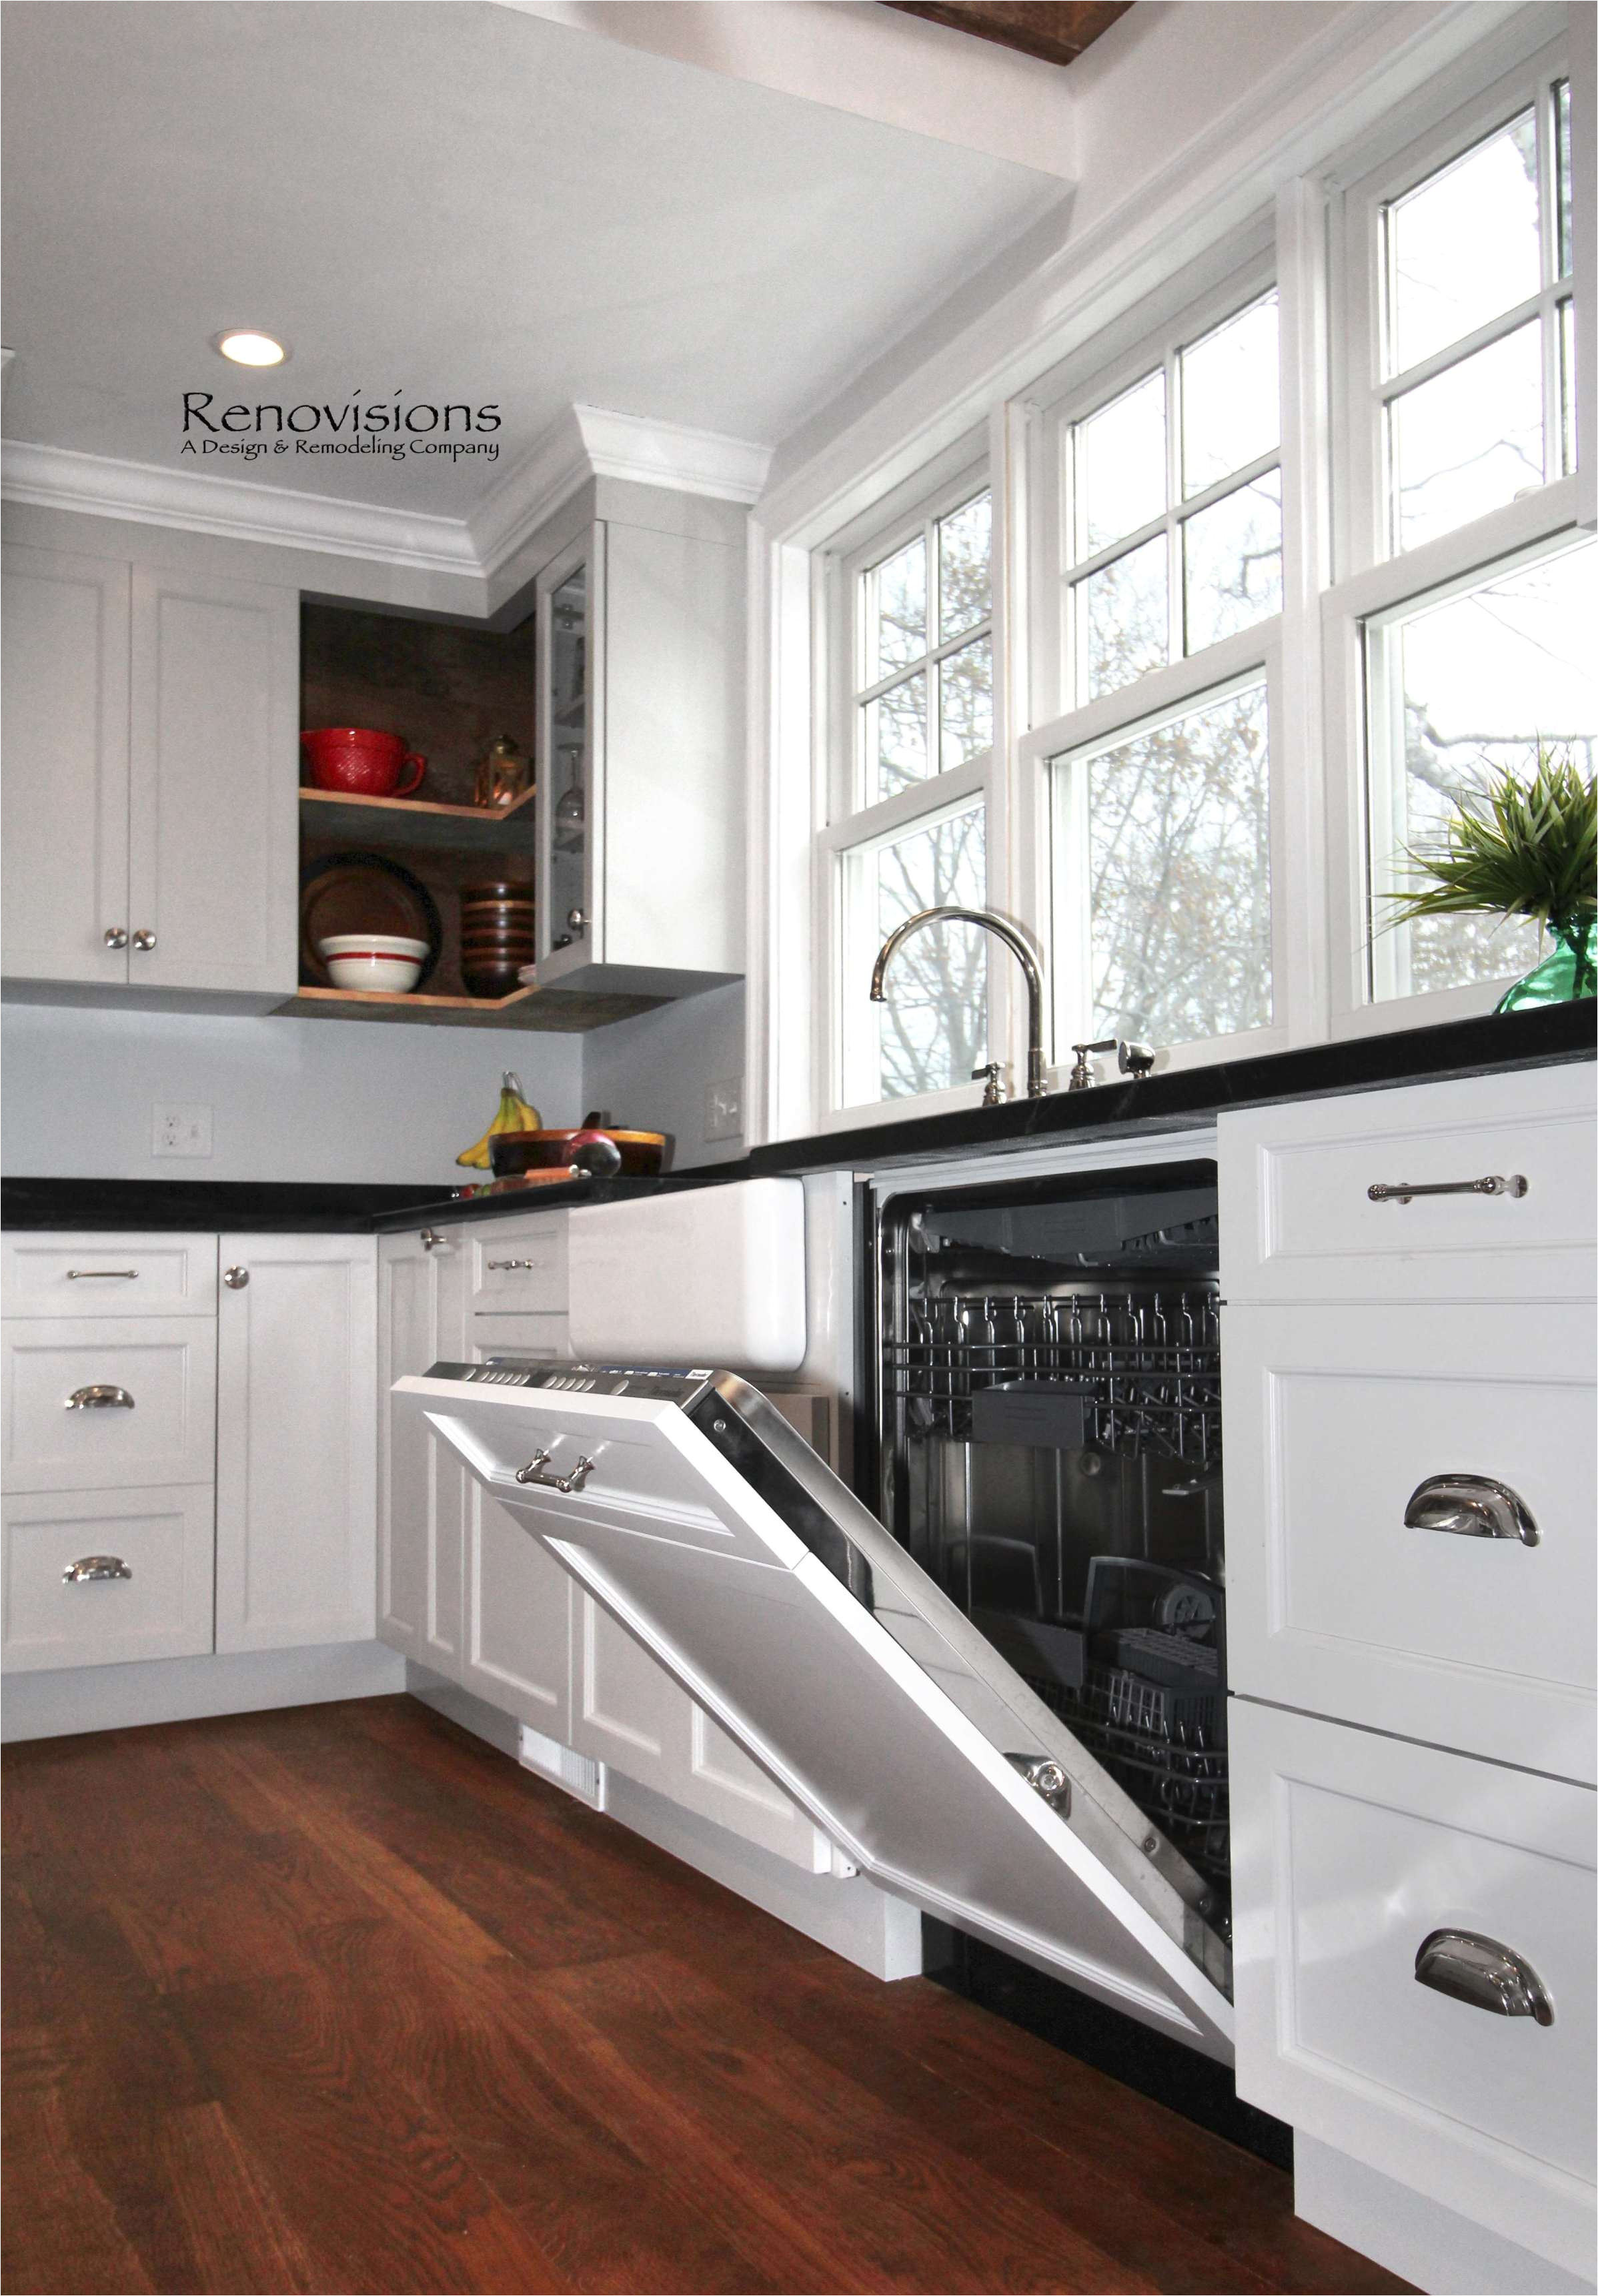 home improvement ikea dishwasher panel with cabinet luxury kitchen remodel by renovisions in